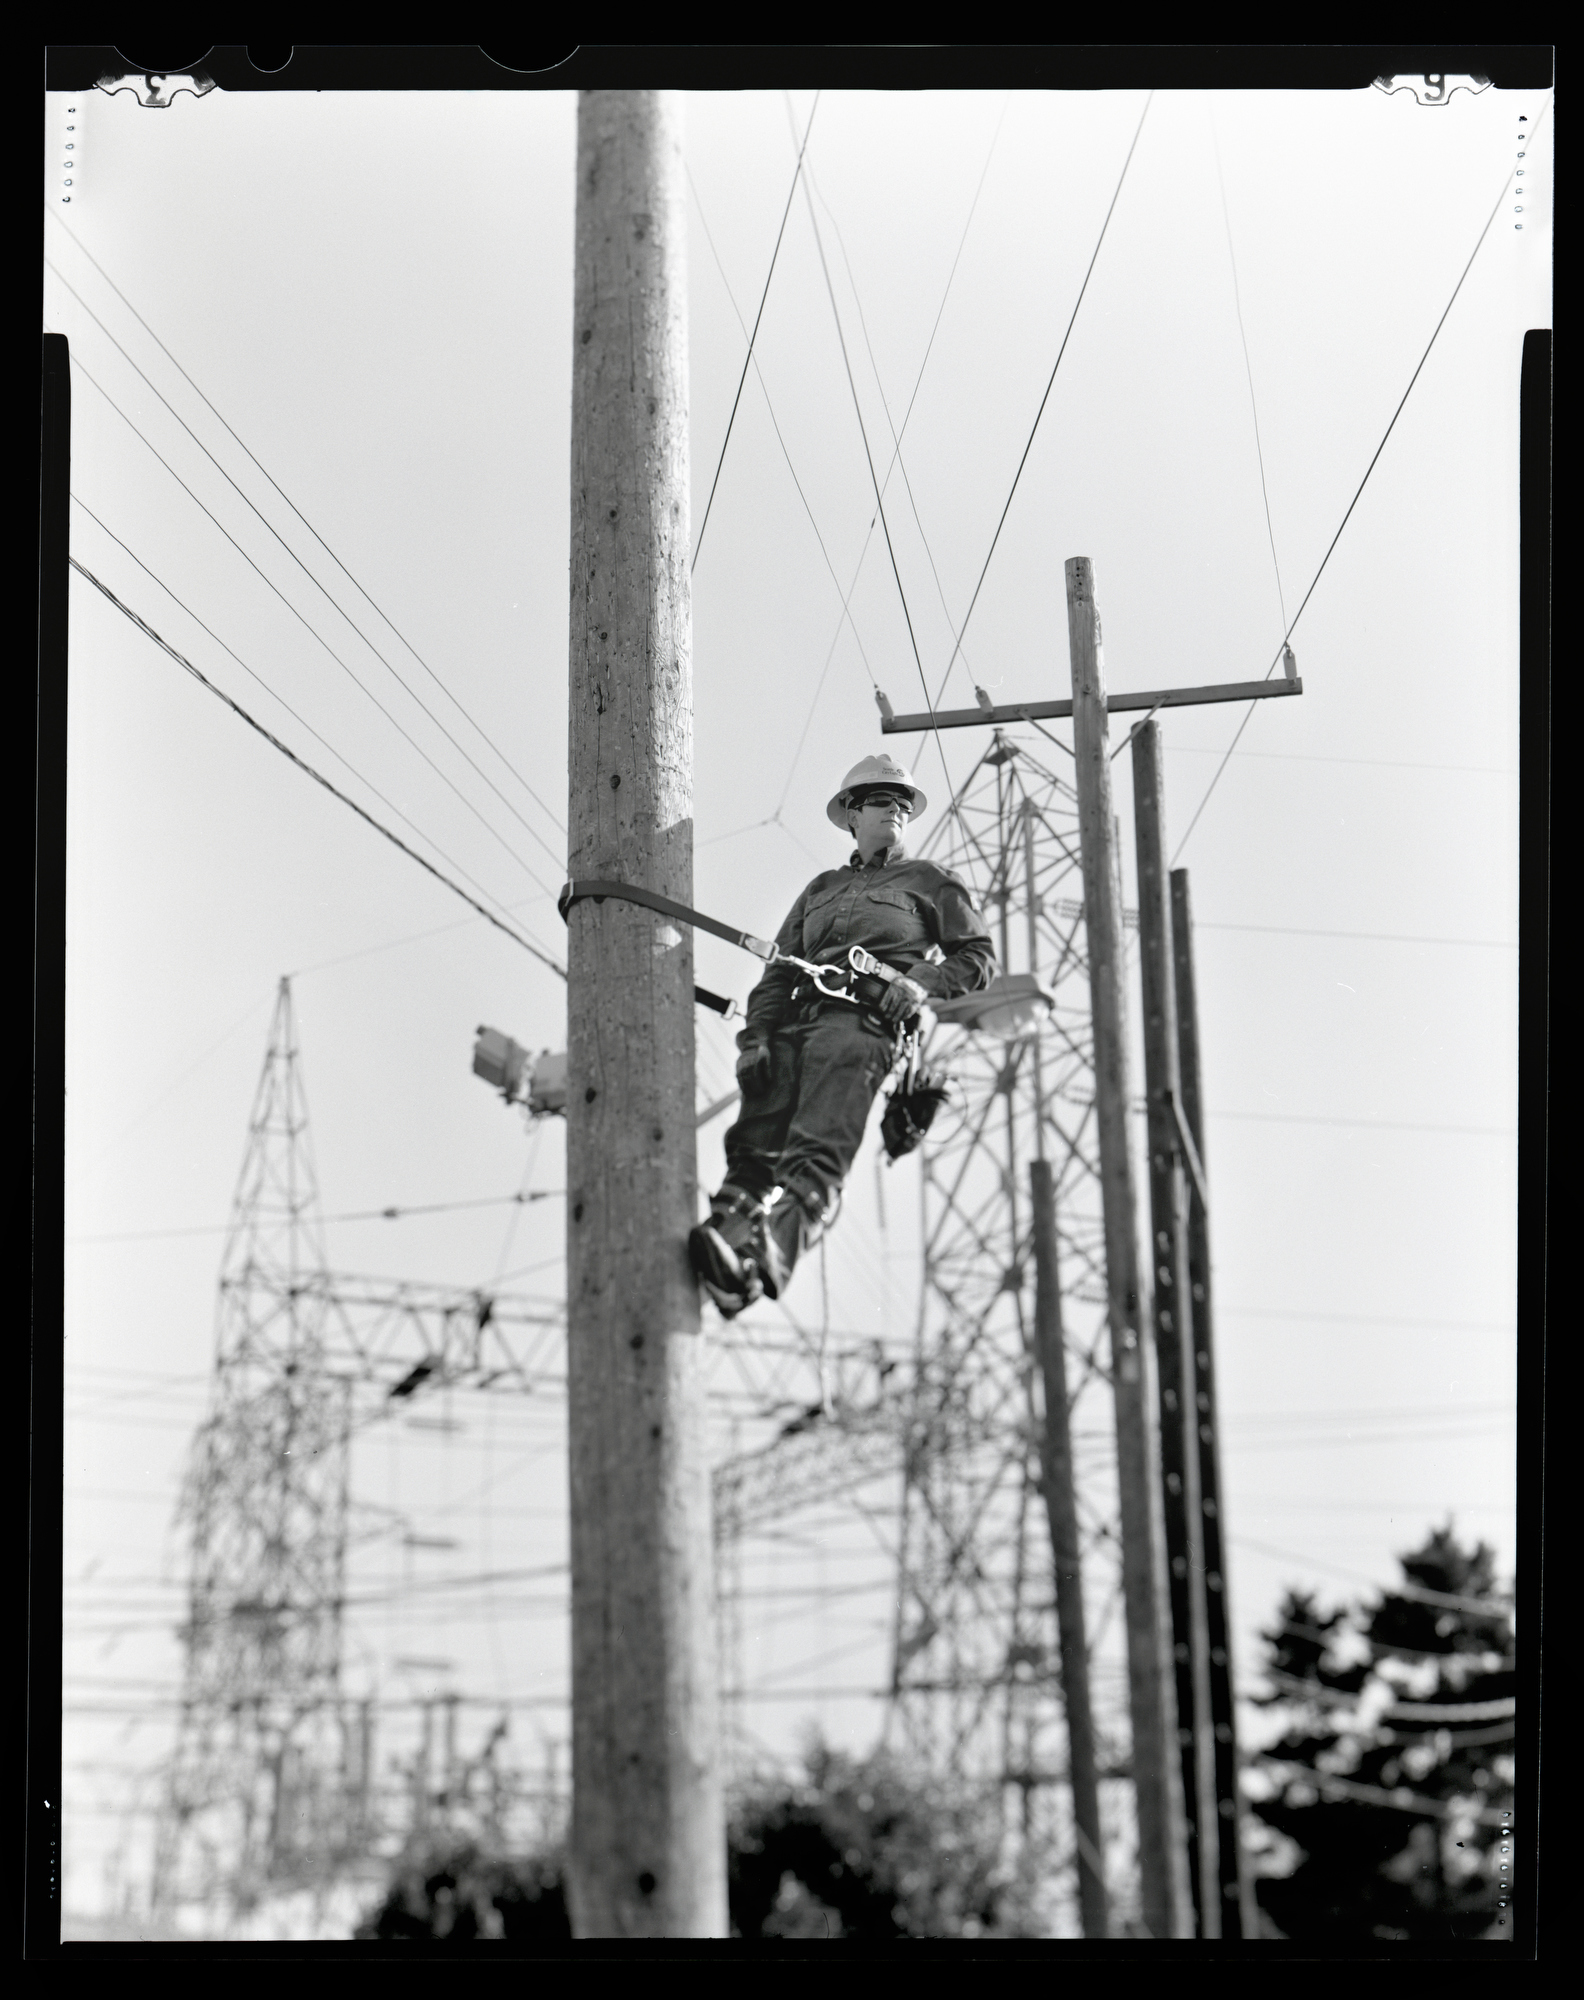 Shannon Fitch is a journeyman lineman for Seattle City Light. Photographed May 4, 2015 for the Women in the Trades portrait series on a 4x5 camera with black and white film.